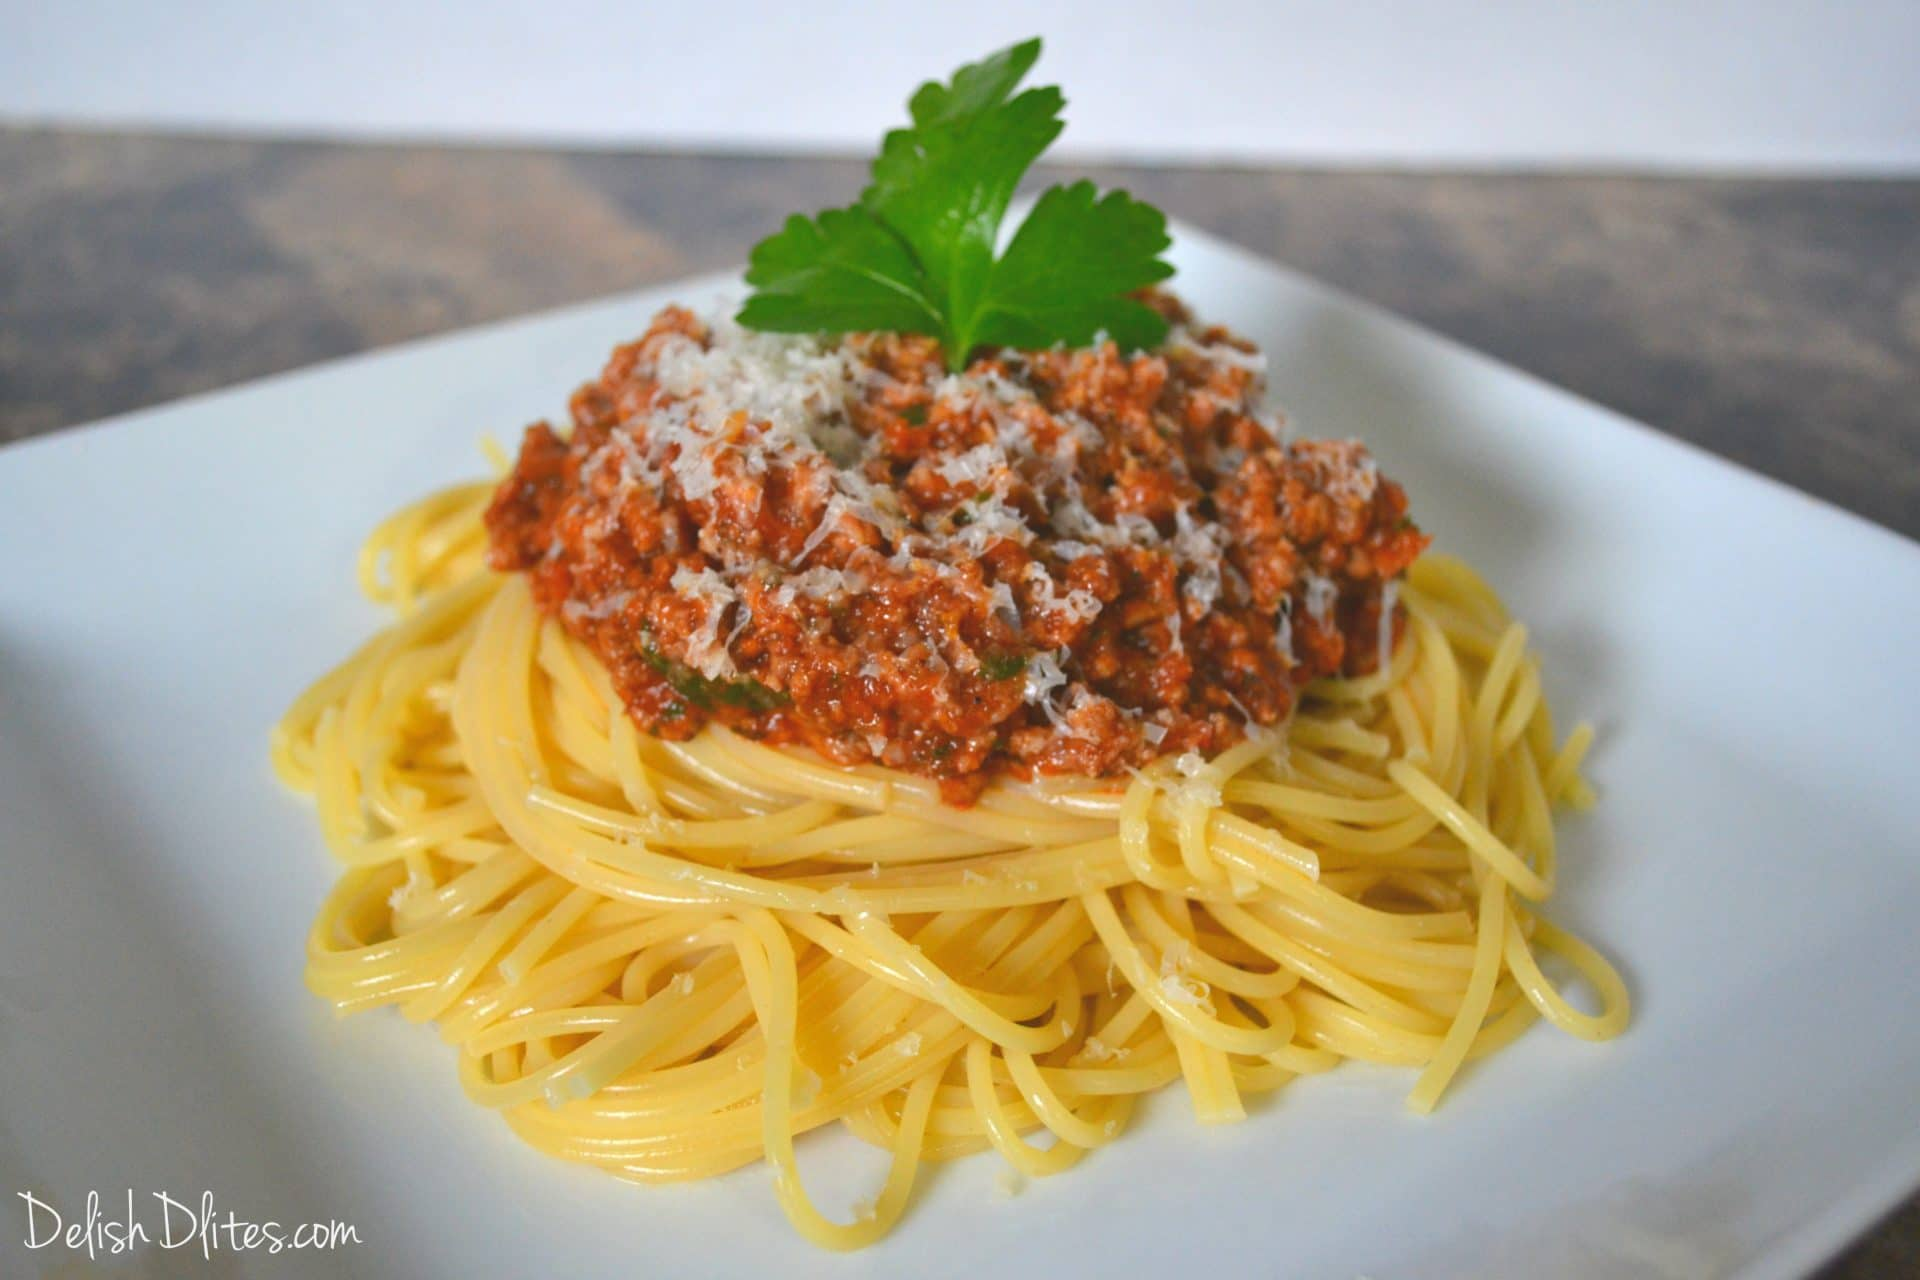 Top the cooked spaghetti with a big spoonful of this delish meat sauce ...